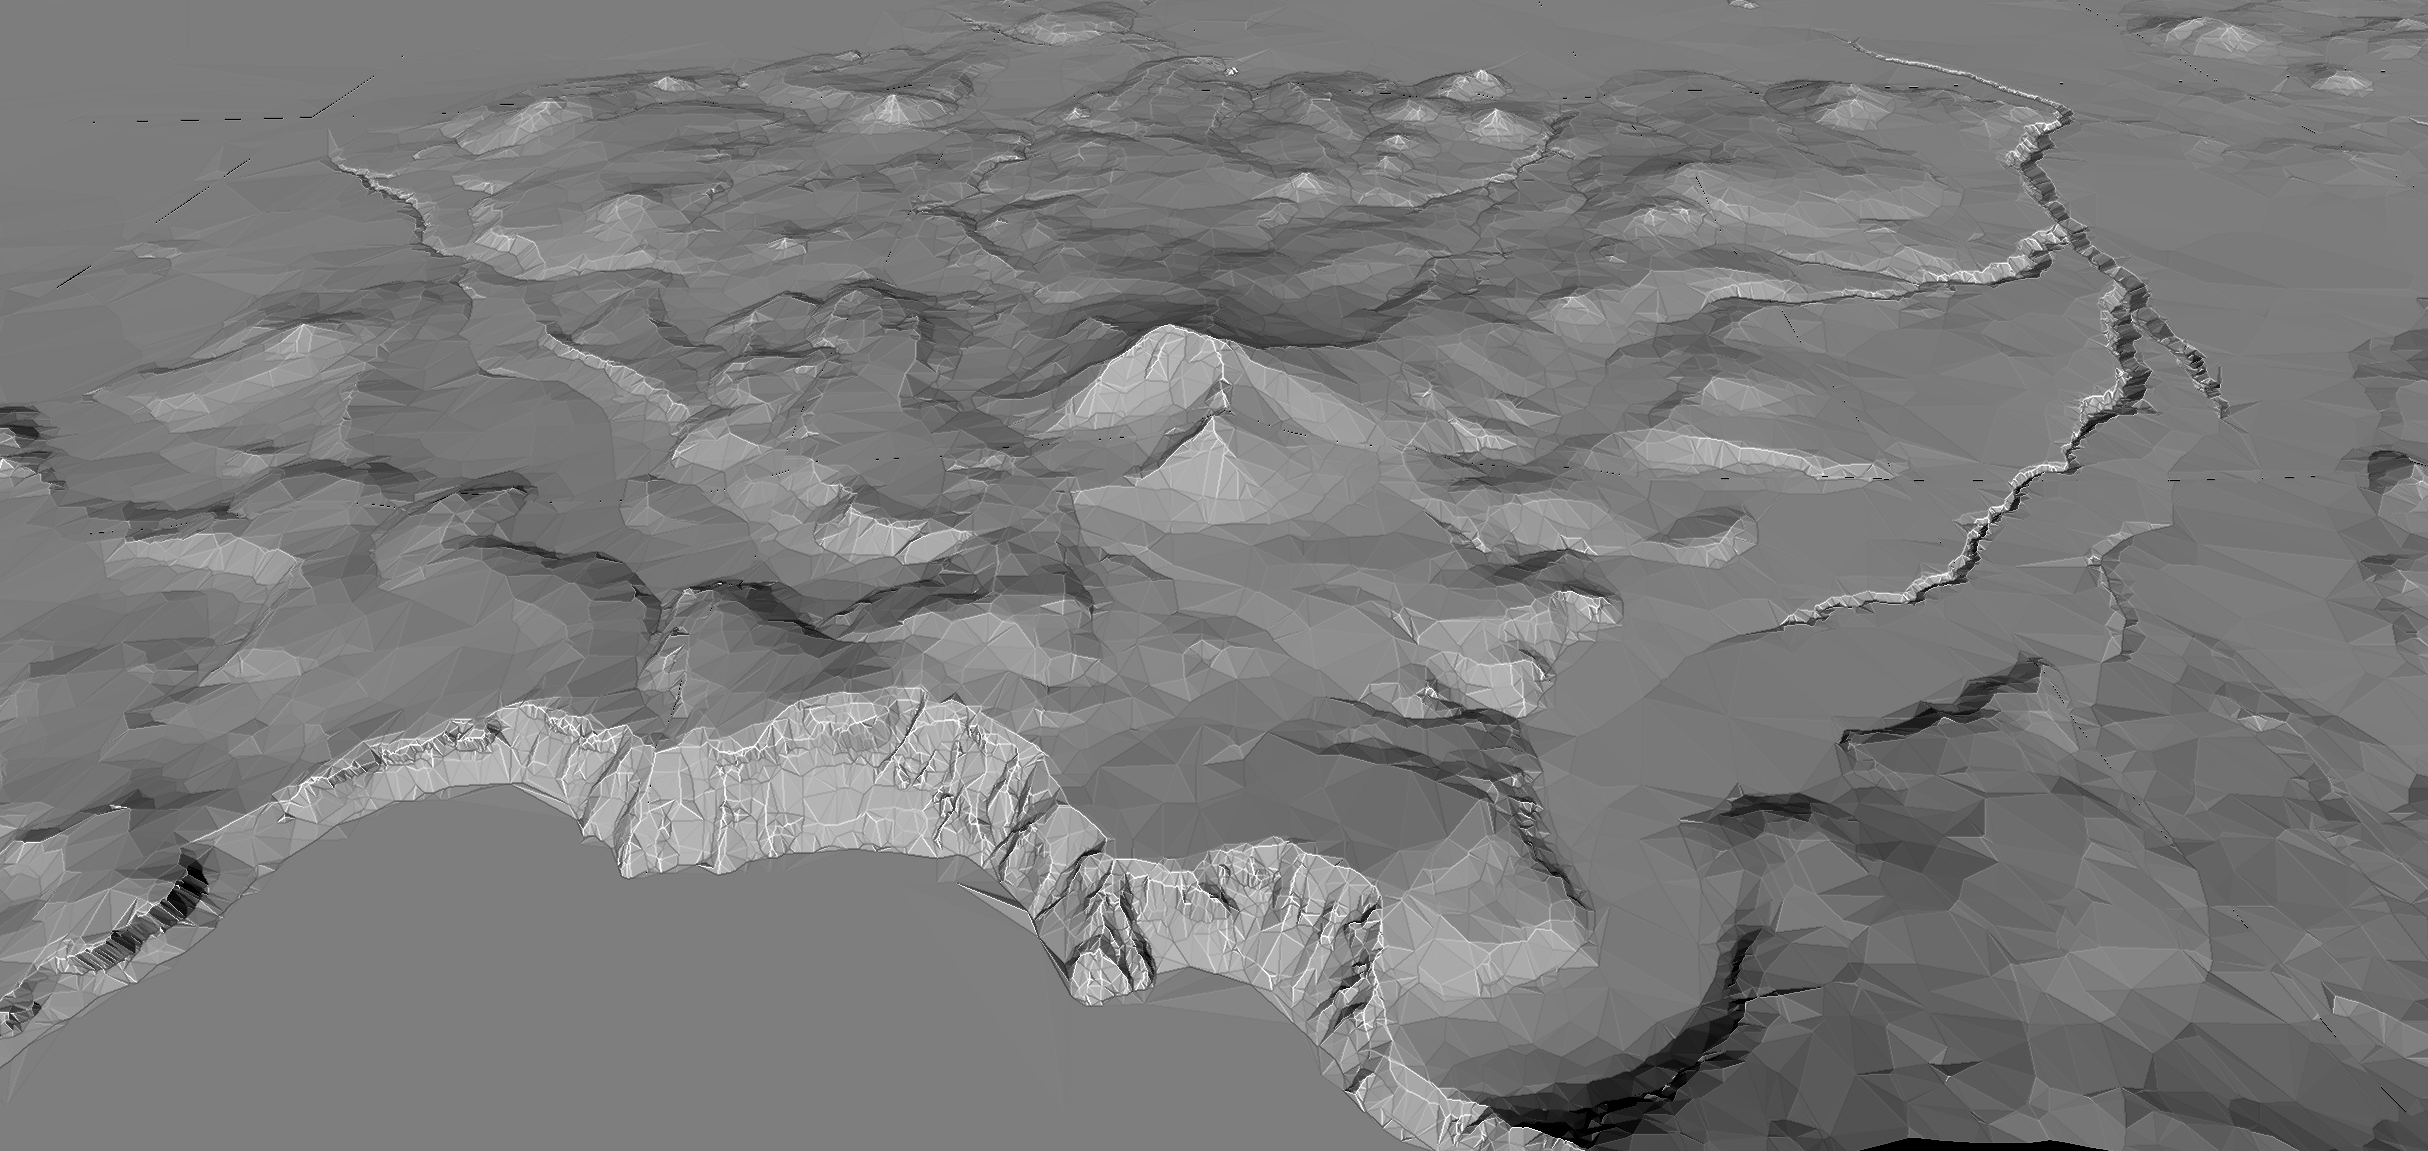 Visualizing Large Scale 3D Terrain with Open Source Tools